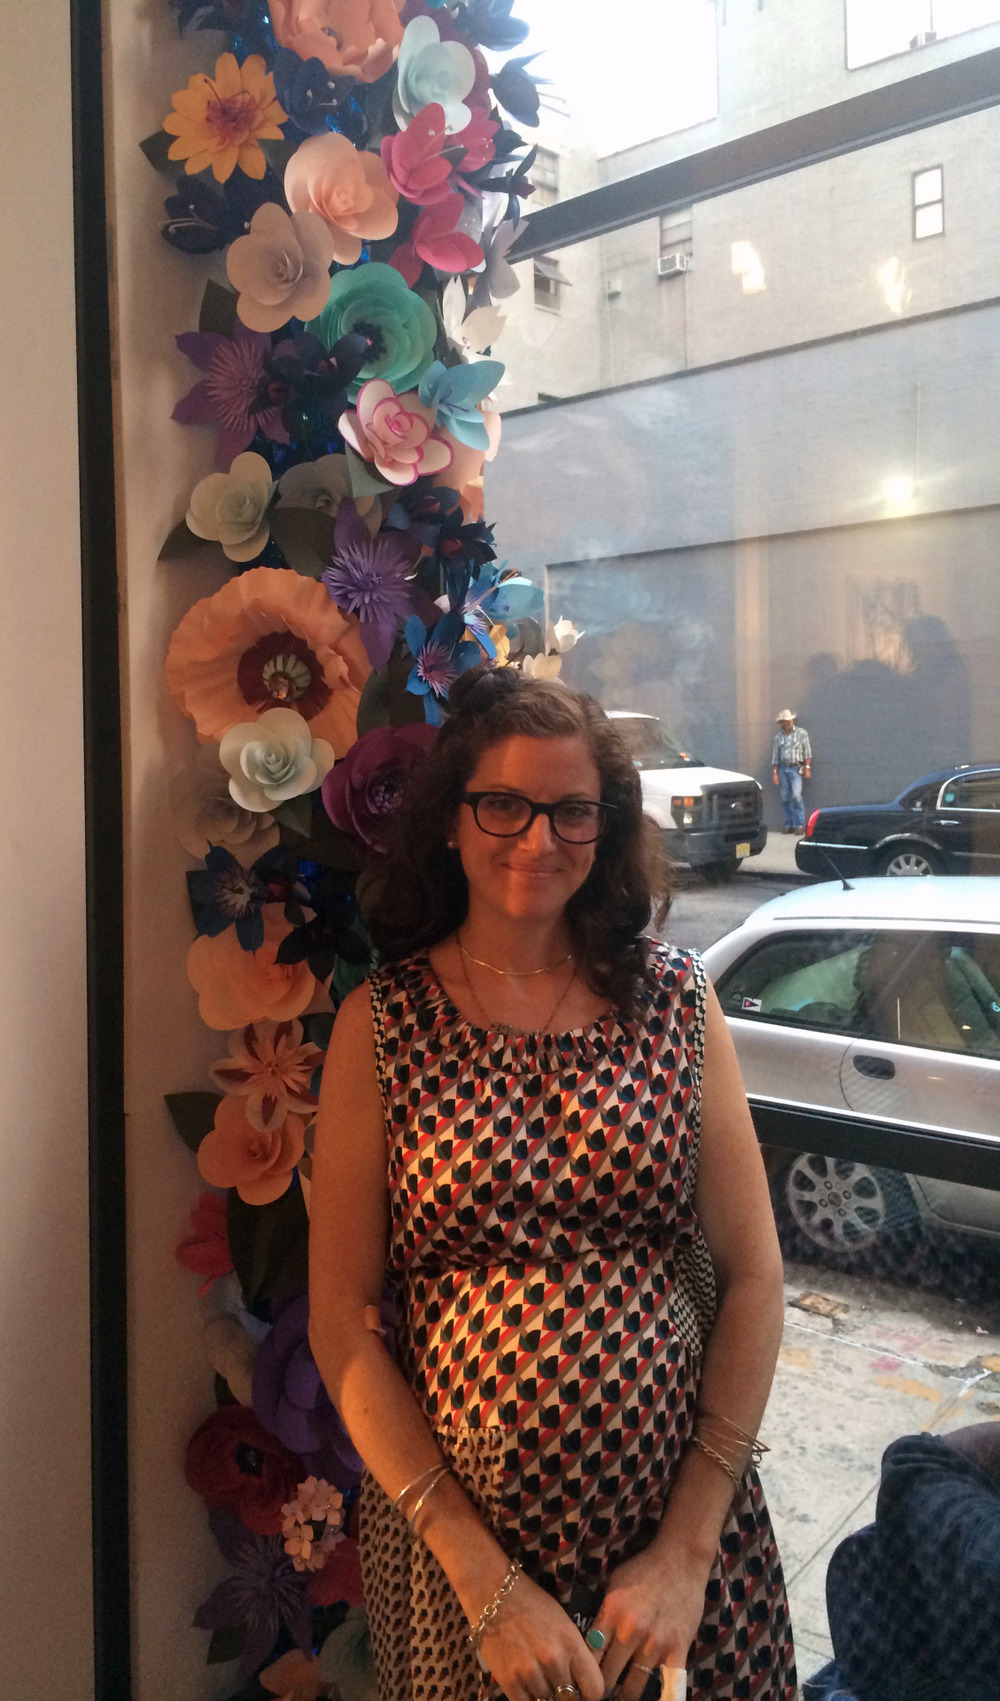 Flowering—A Group Show     RISD MFA 2014 Painting show     Pictured above is Eloise Danch and her paper floral creation for the Flowering Show. Eloise installed hand made paper flowers on either side of the main window that looks out of the gallery. Hundreds of handmade flowers frame the window and set a beautiful tone for the show. The flowers look other worldly and are impeccably created. Worth checking out just to see these beautiful summer flowers!        nancymargolisgallery.com